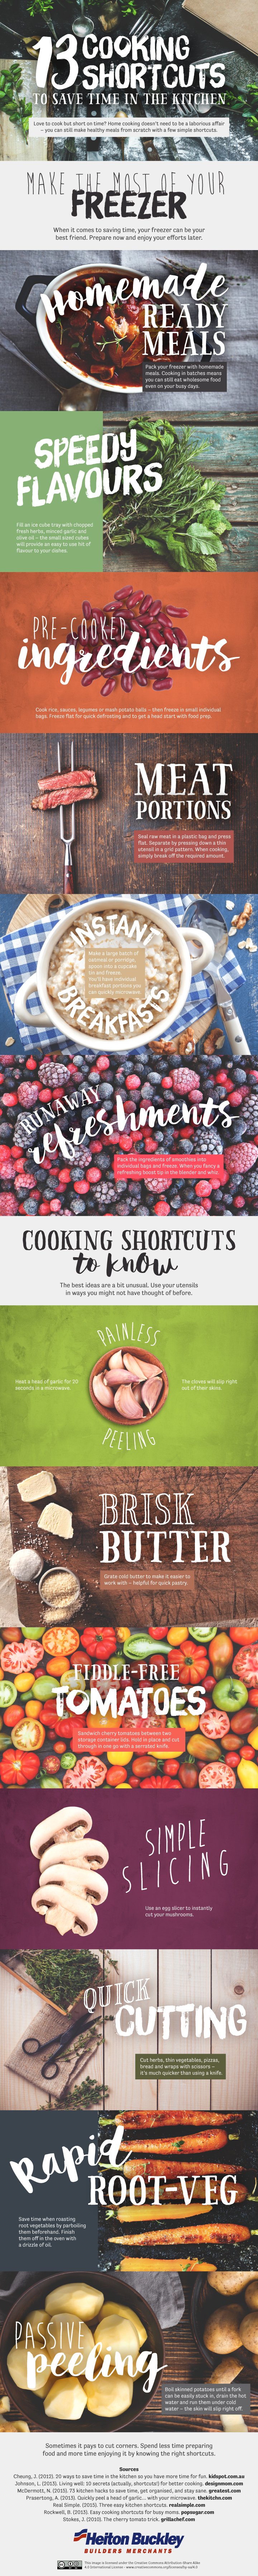 13 Cooking Shortcuts To Save Time In The Kitchen